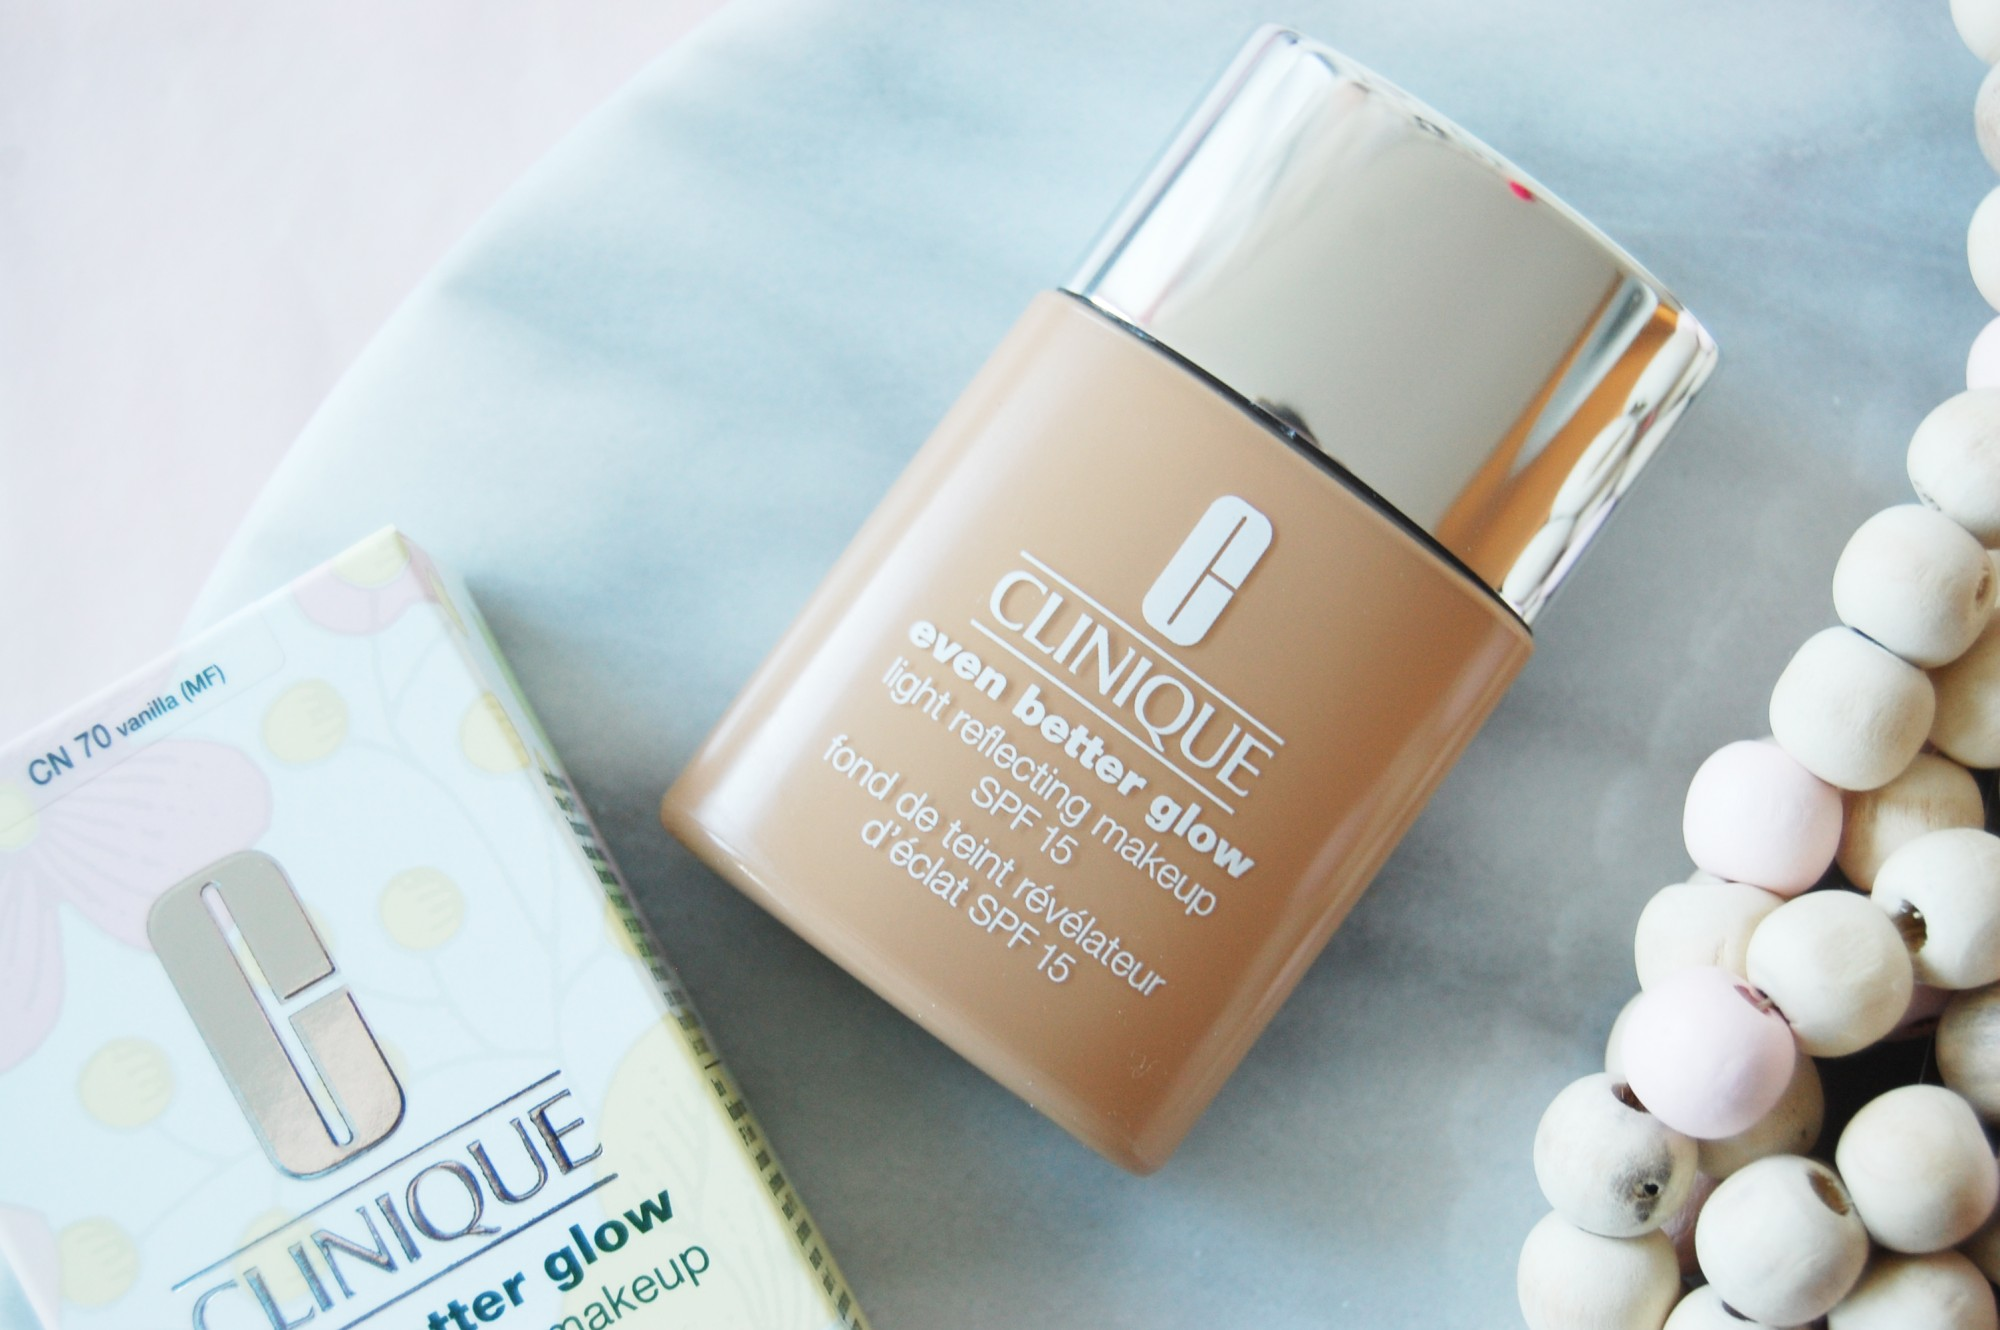 Clinique Even Better Glow Light Reflecting Make-up